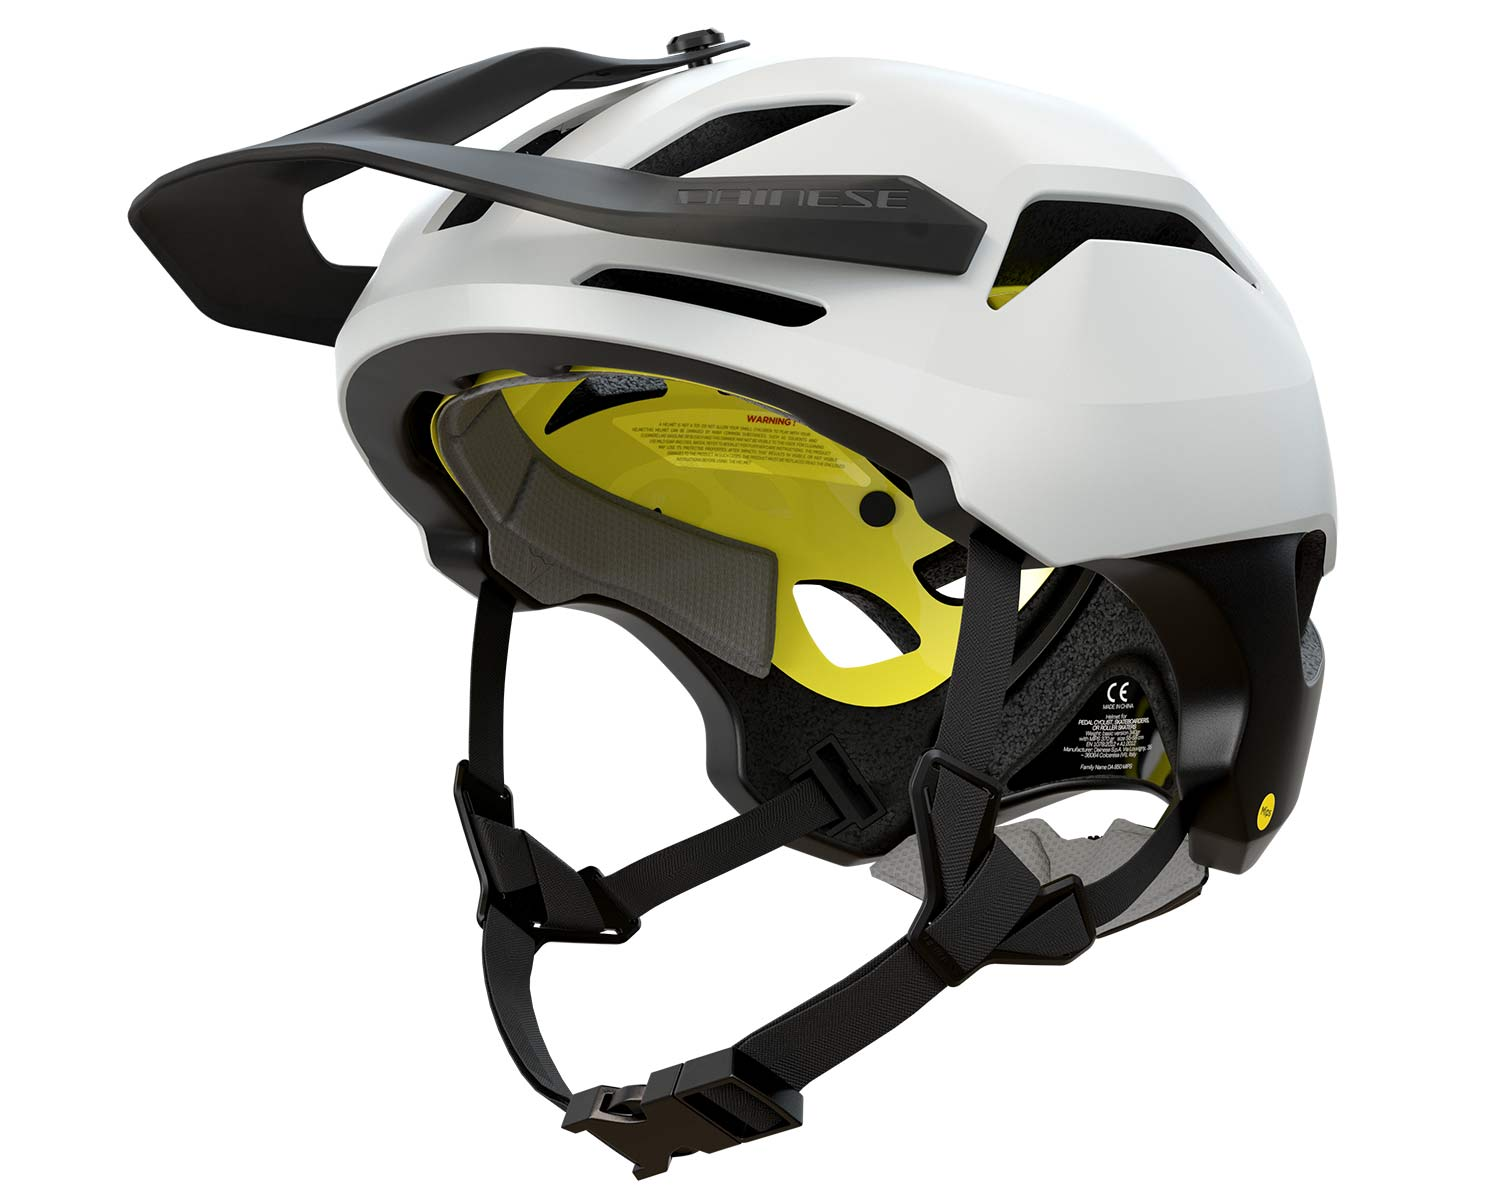 Dainese Linea 03 trail bike half shell helmet, lightweight MIPS Recco MTB protection at 370g